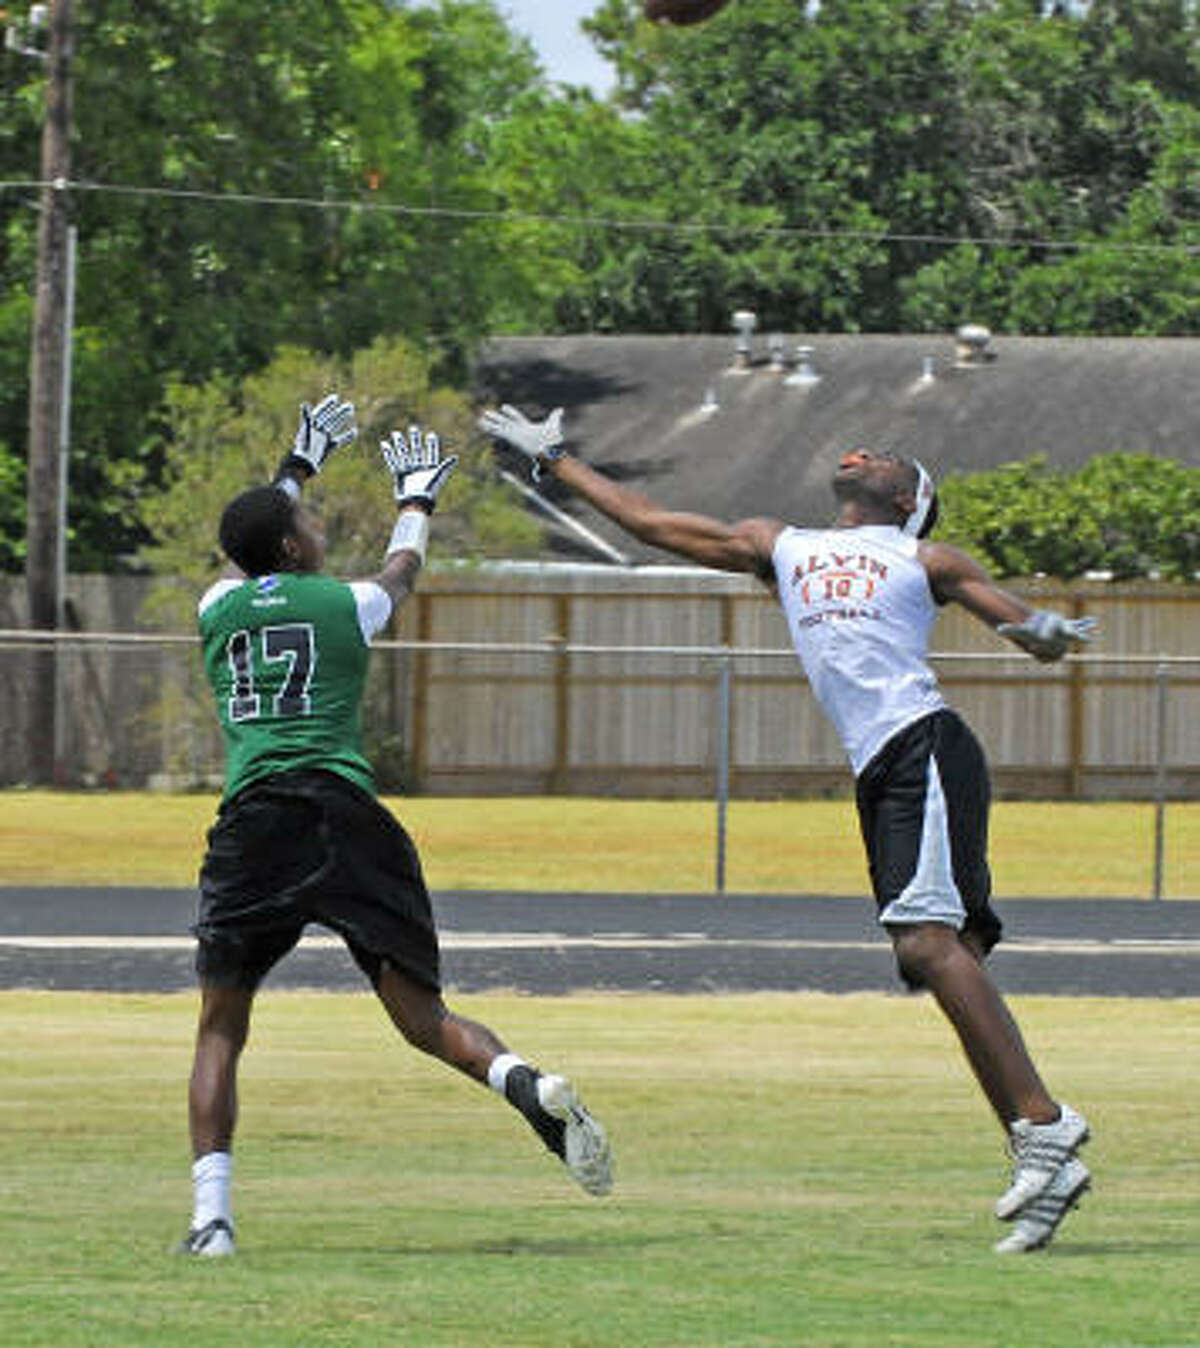 Randall Riggins, No. 17, of Spring reaches for a pass as Bruce Horton of Alvin defends.